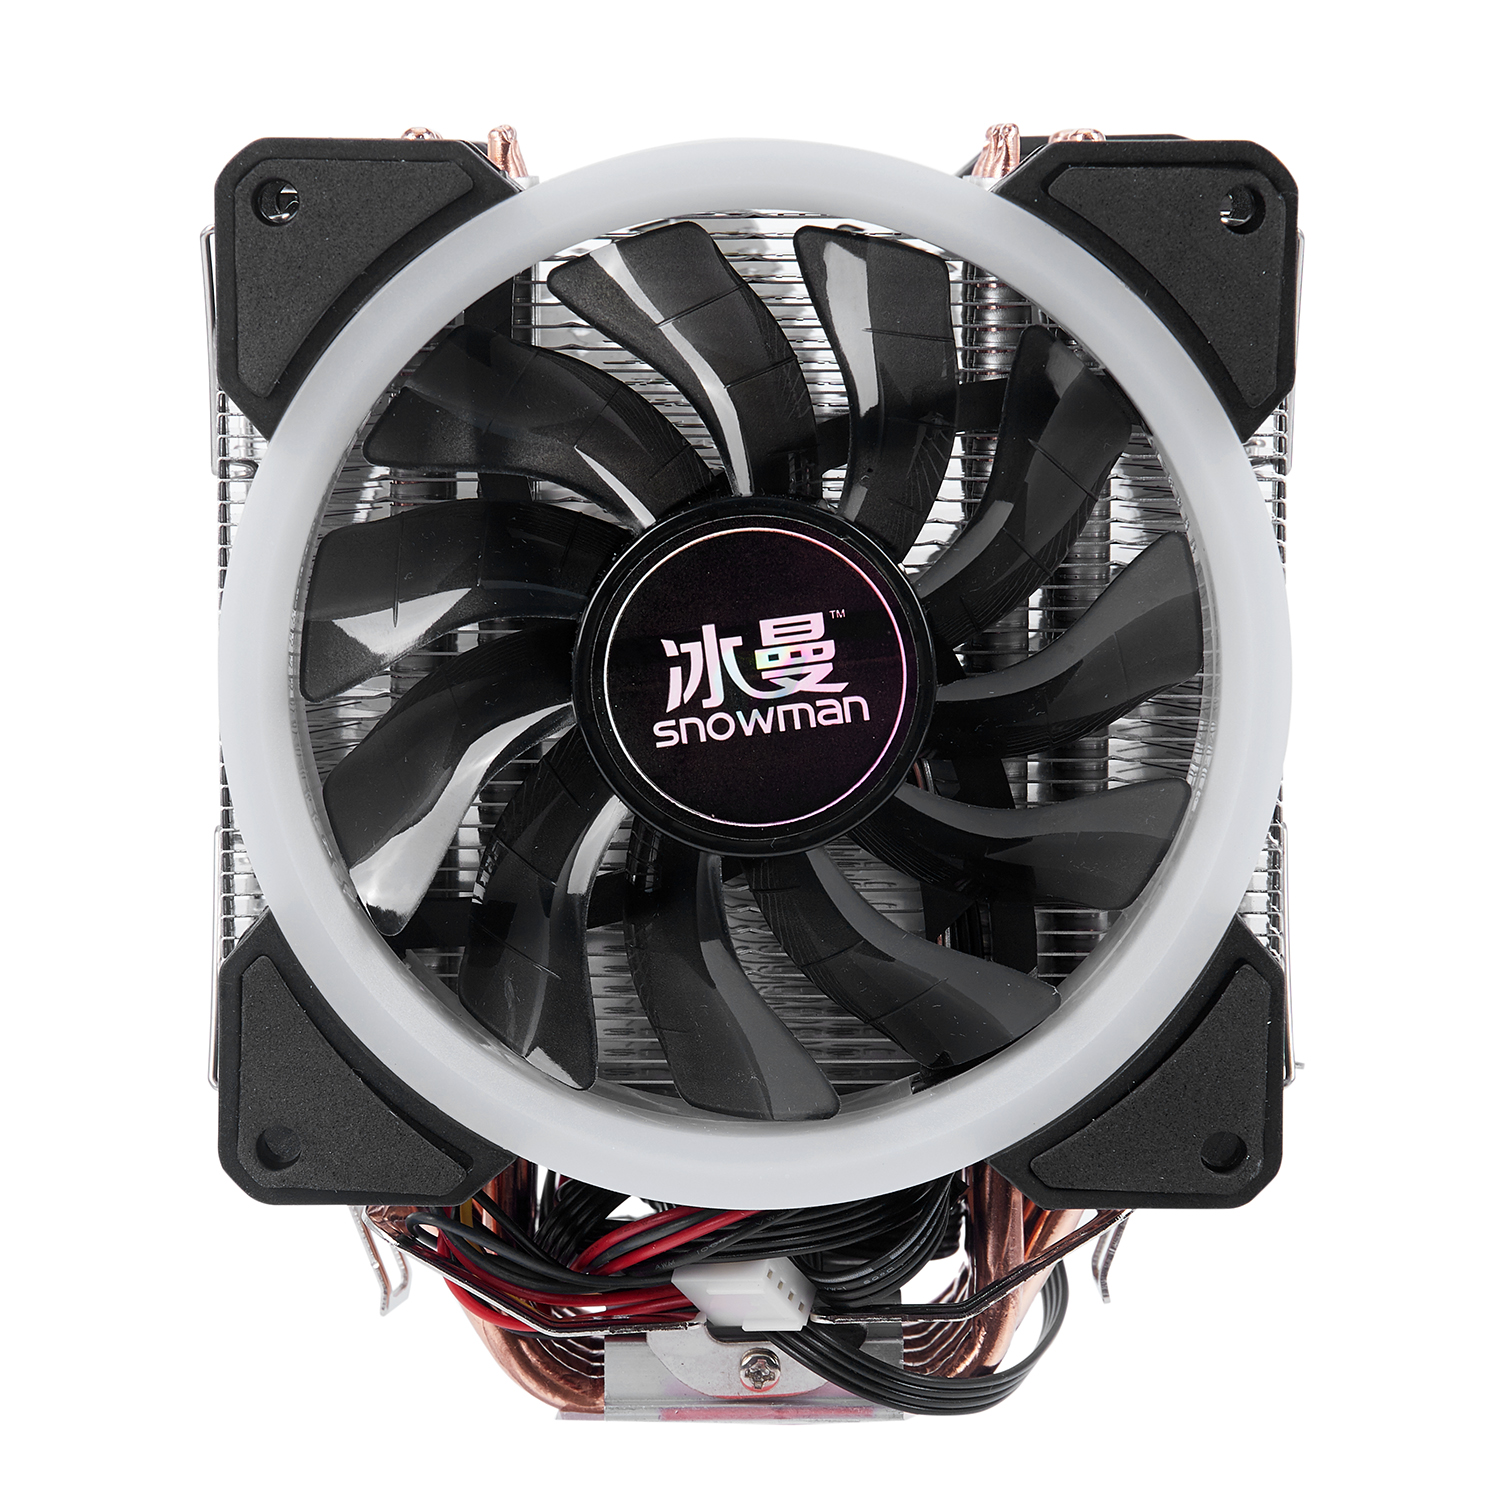 SNOWMAN 4PIN CPU cooler 6 heatpipe RGB LED Double fans cooling 12cm fan LGA775 1151 115x 1366 support Intel AMD image